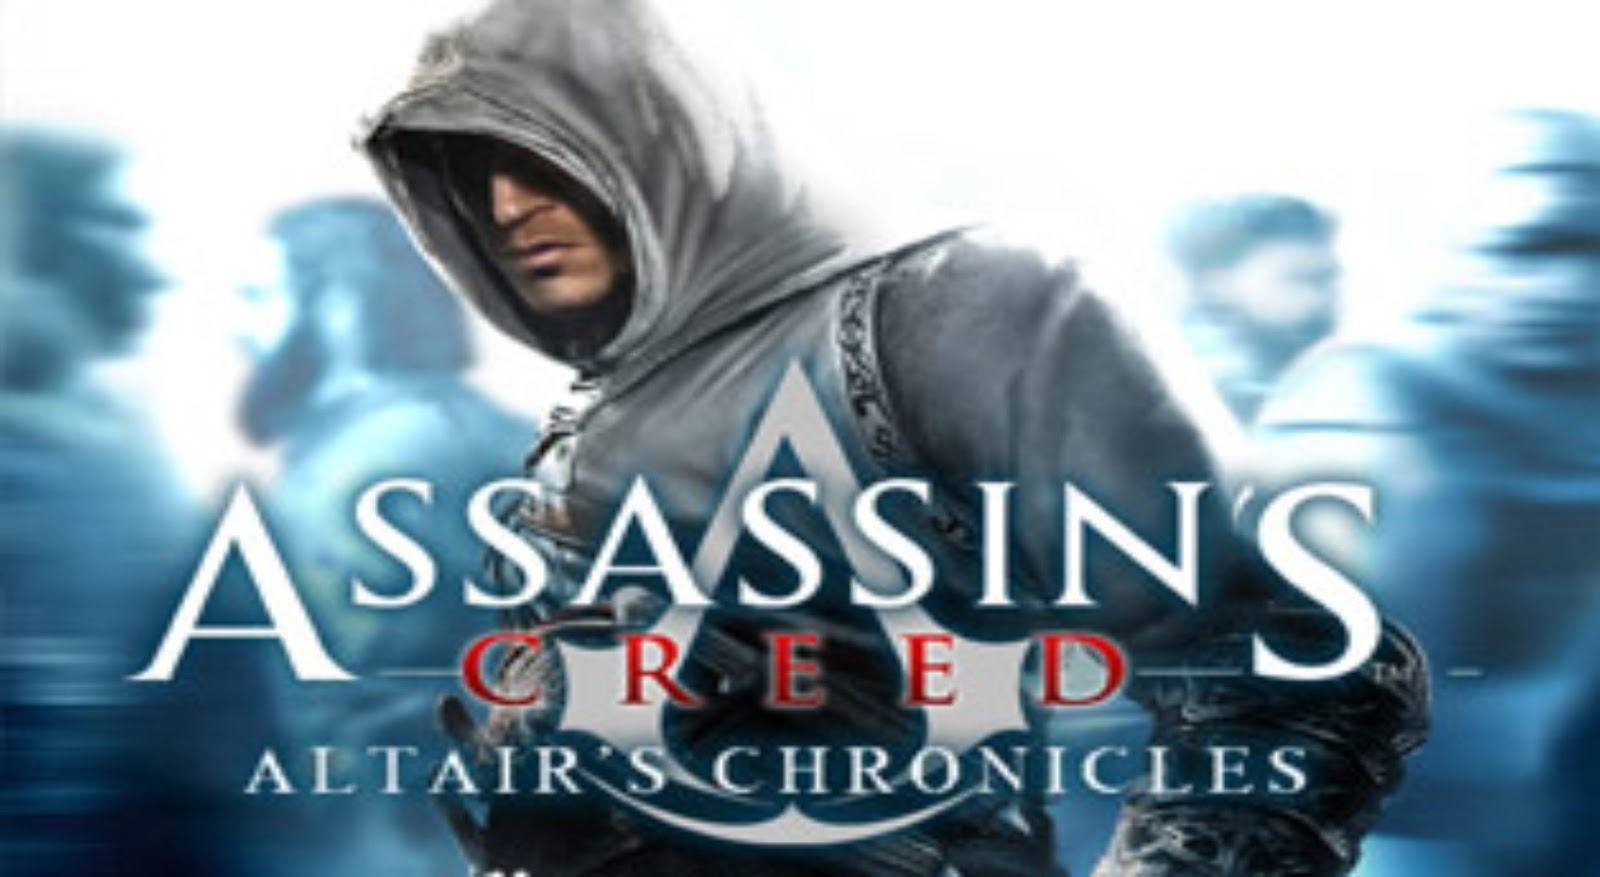 Assassin's Creed™ - Altaïr's Chronicles HD apk for android